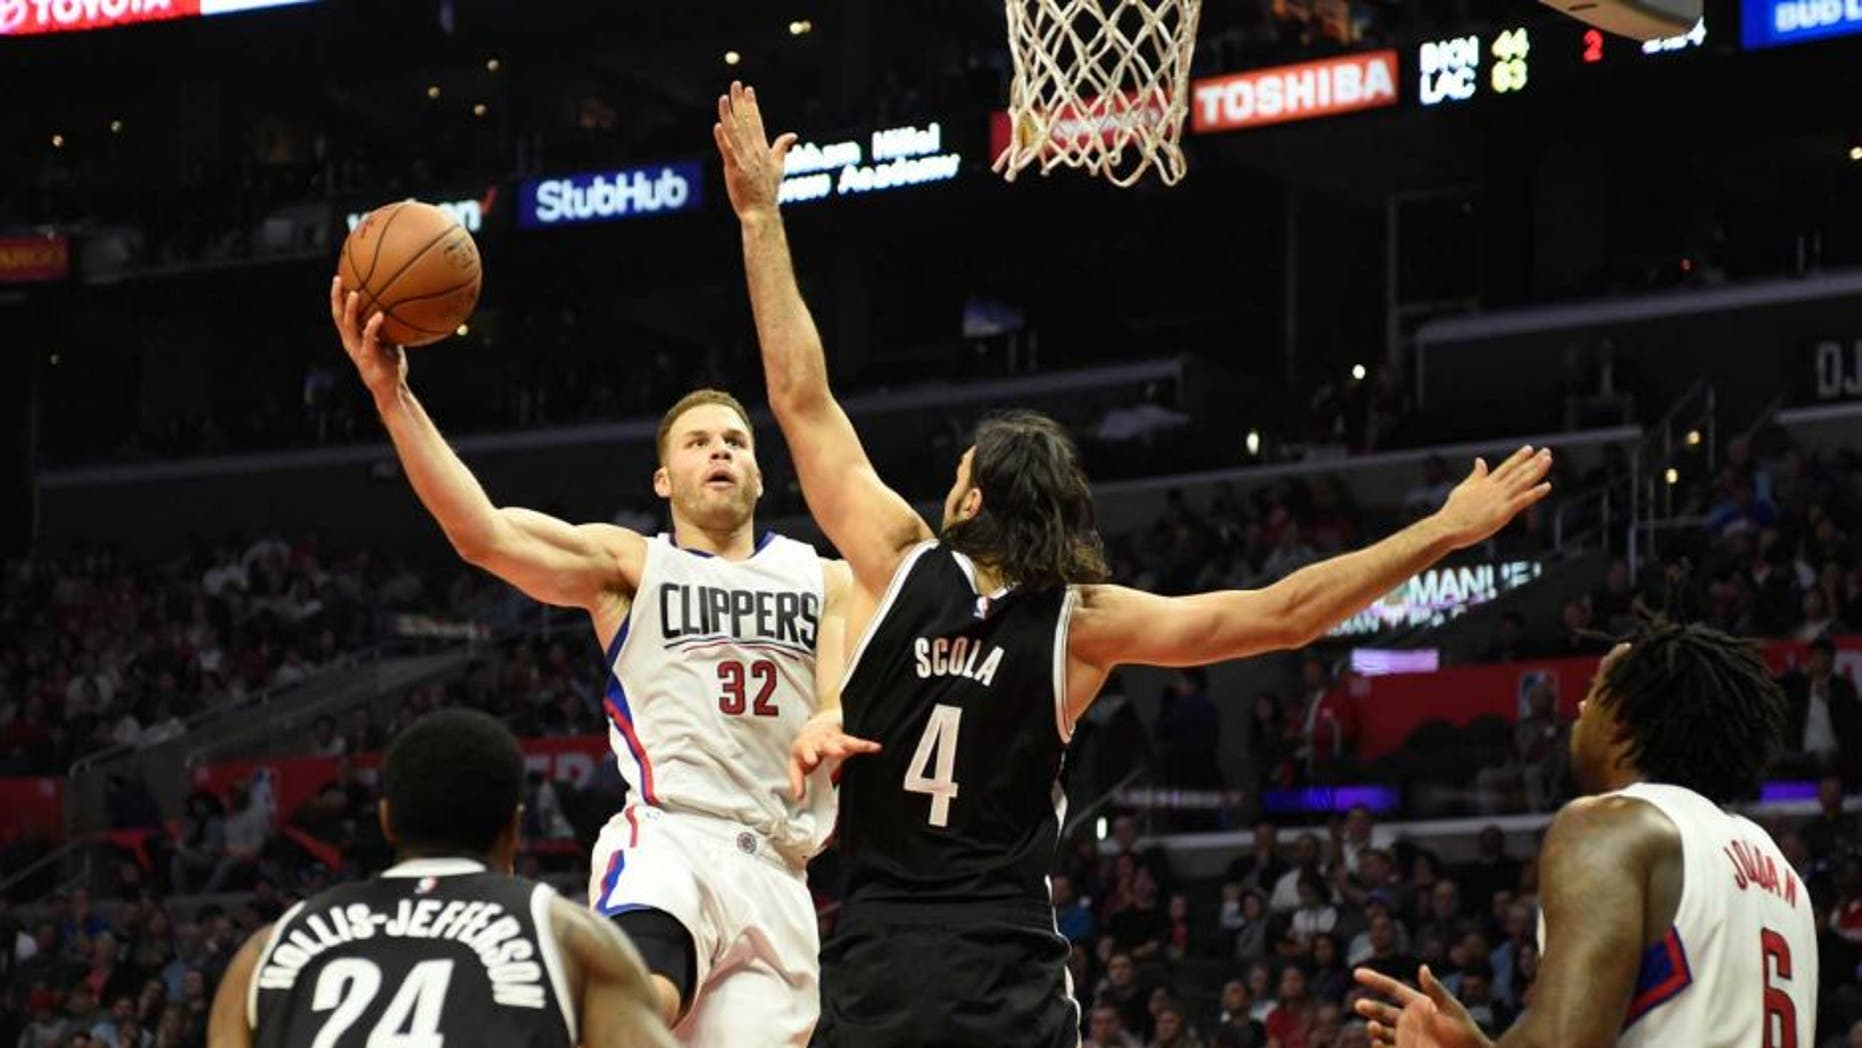 Nov 14, 2016; Los Angeles, CA, USA; Los Angeles Clippers forward Blake Griffin (32) shoots against Brooklyn Nets forward Luis Scola (4) in the first half of a NBA basketball game at Staples Center. Mandatory Credit: Richard Mackson-USA TODAY Sports